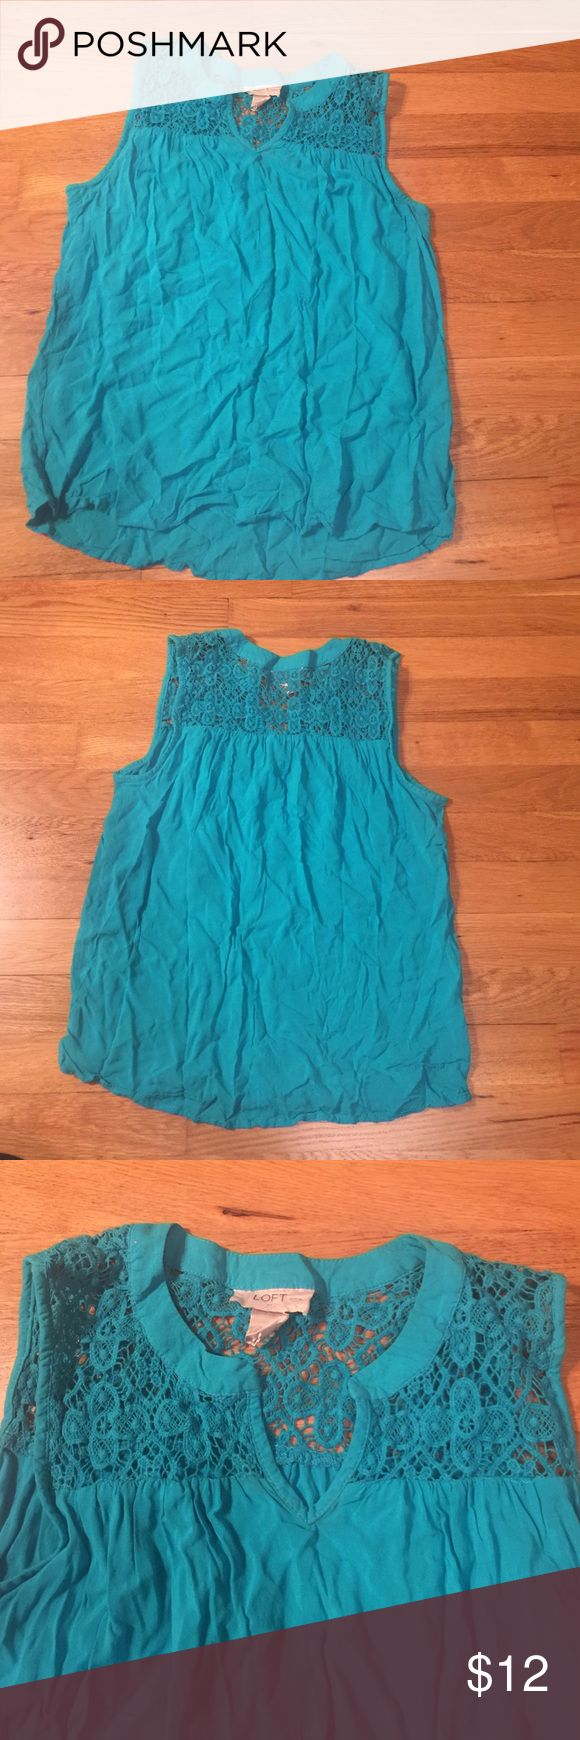 🎉🎉Loft turquoise shirt Loft turquoise shirt.  Fits xxs.  Wrinkled for being in a box.  Getting shirt steamed.  Let me know if interested. LOFT Tops